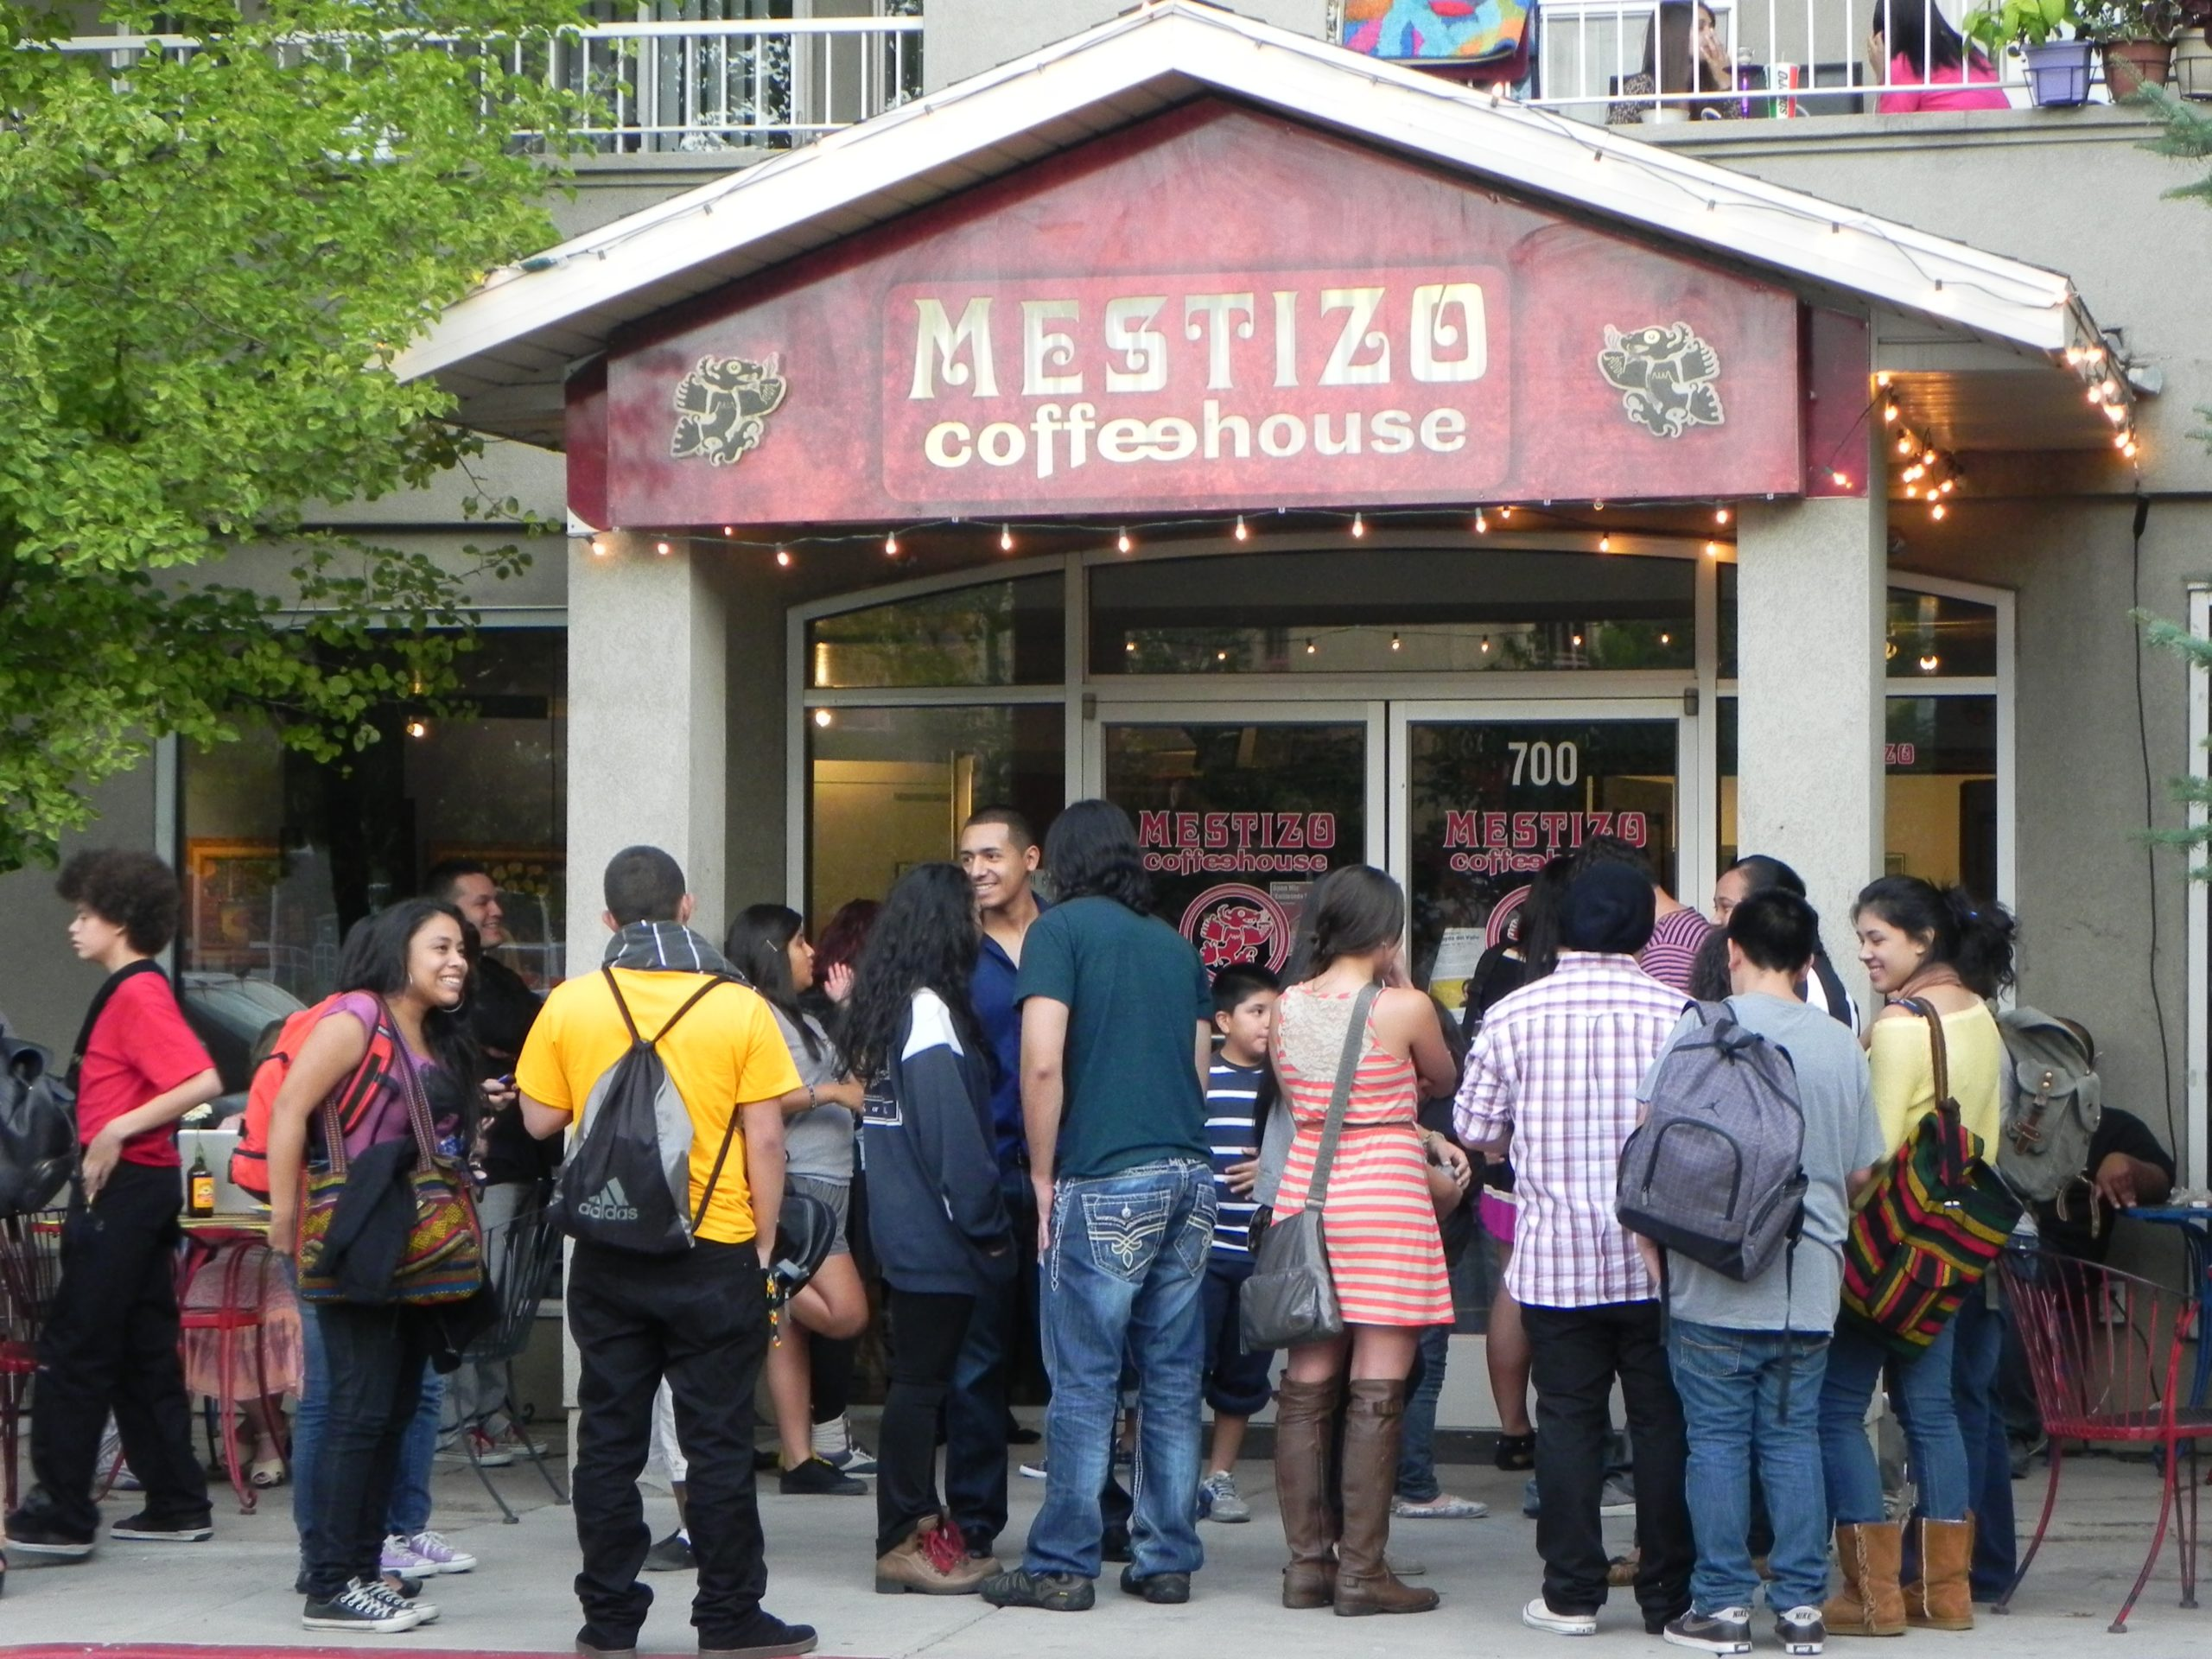 People in front of Mestizo Coffeehouse